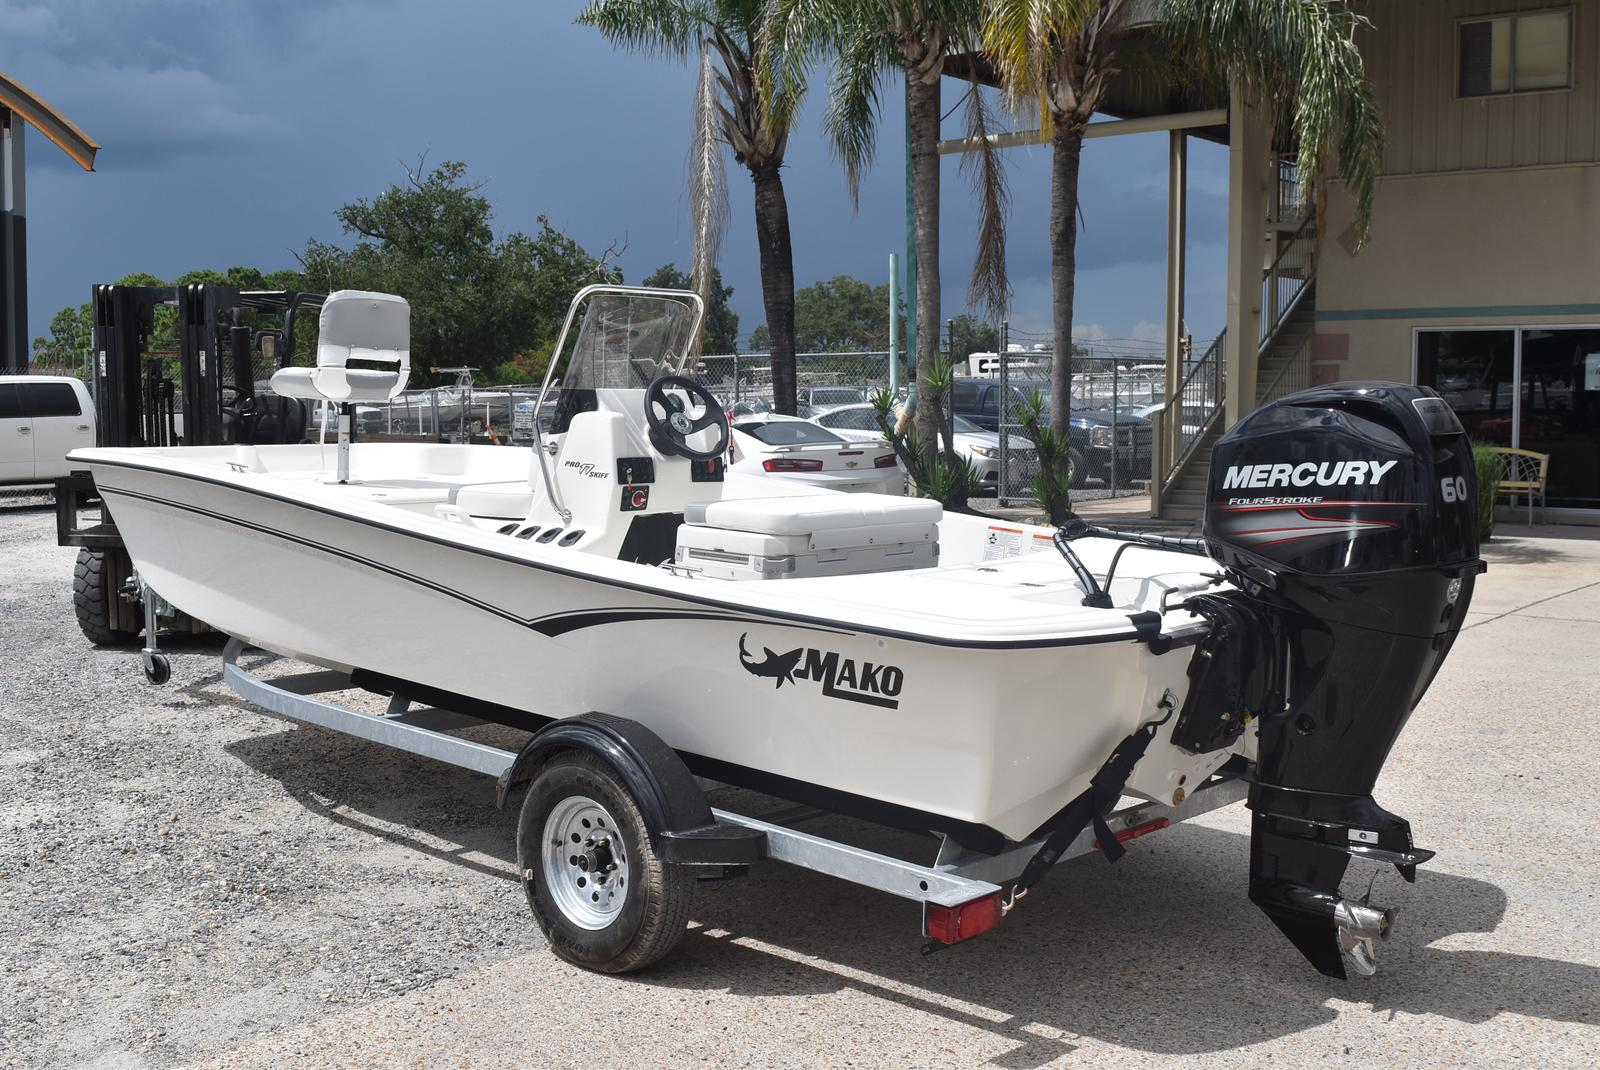 2020 Mako boat for sale, model of the boat is Pro Skiff 17, 75 ELPT & Image # 168 of 702